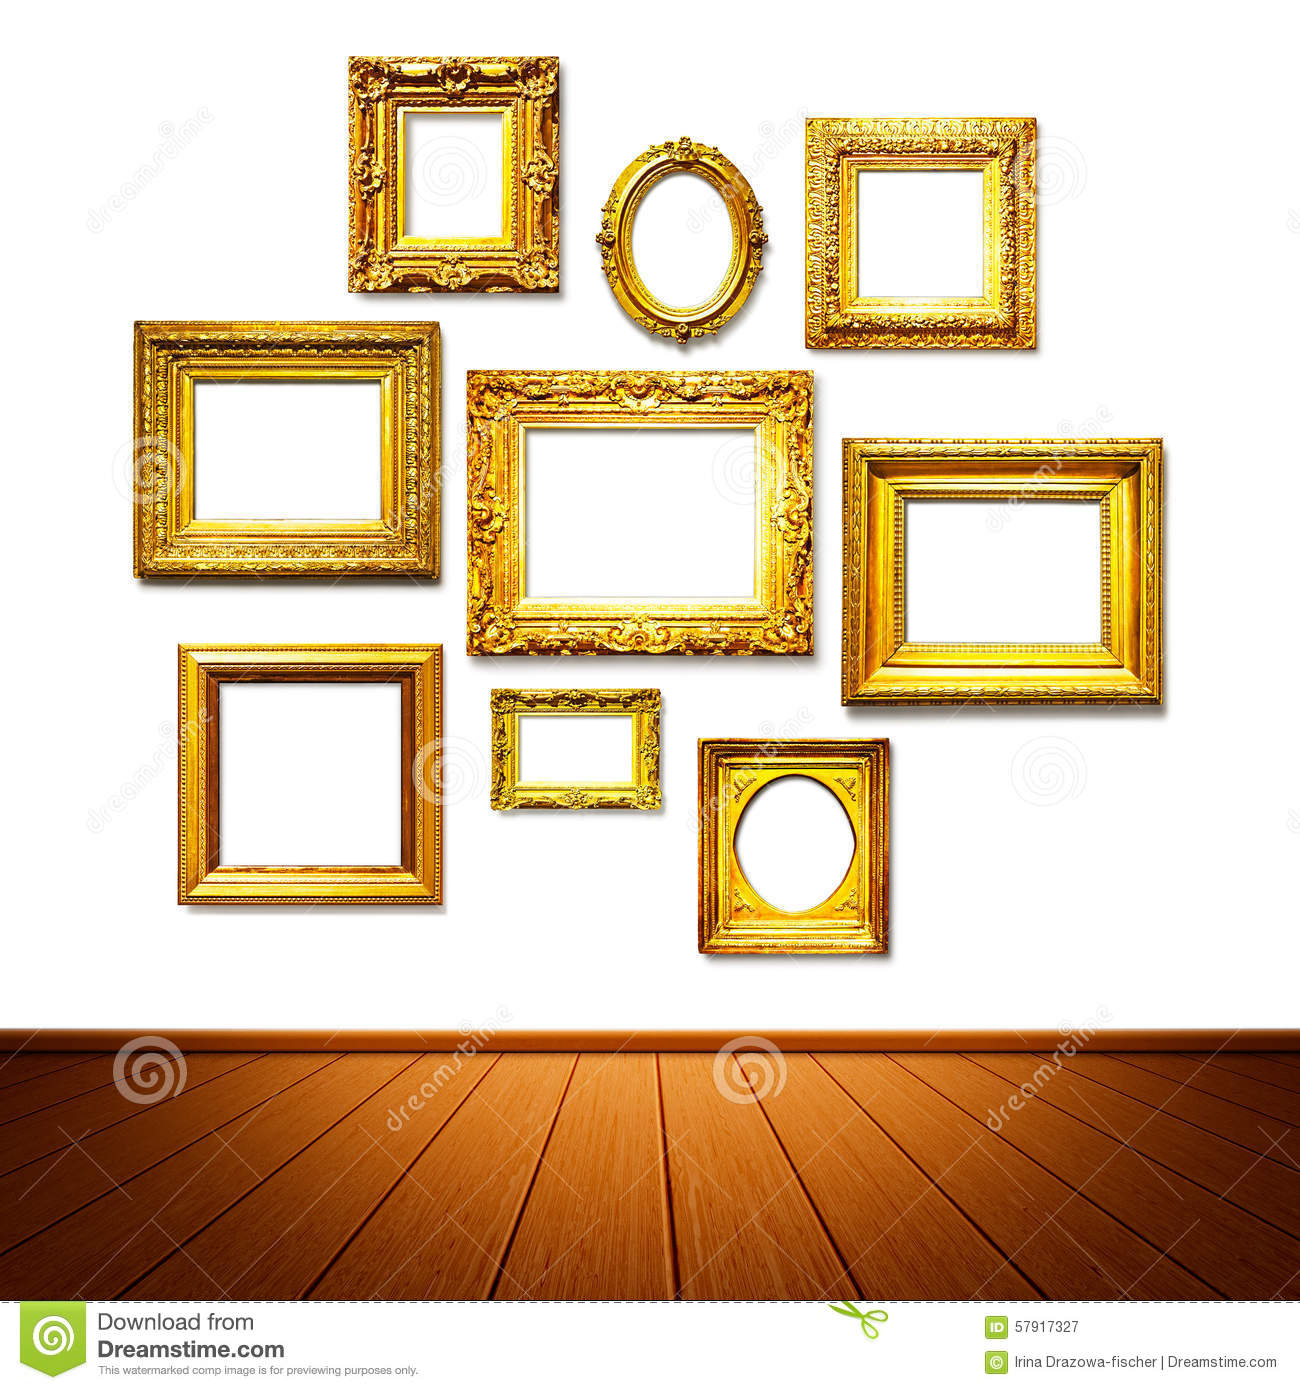 Frame wall stock image. Image of museum, interior, border - 57917327